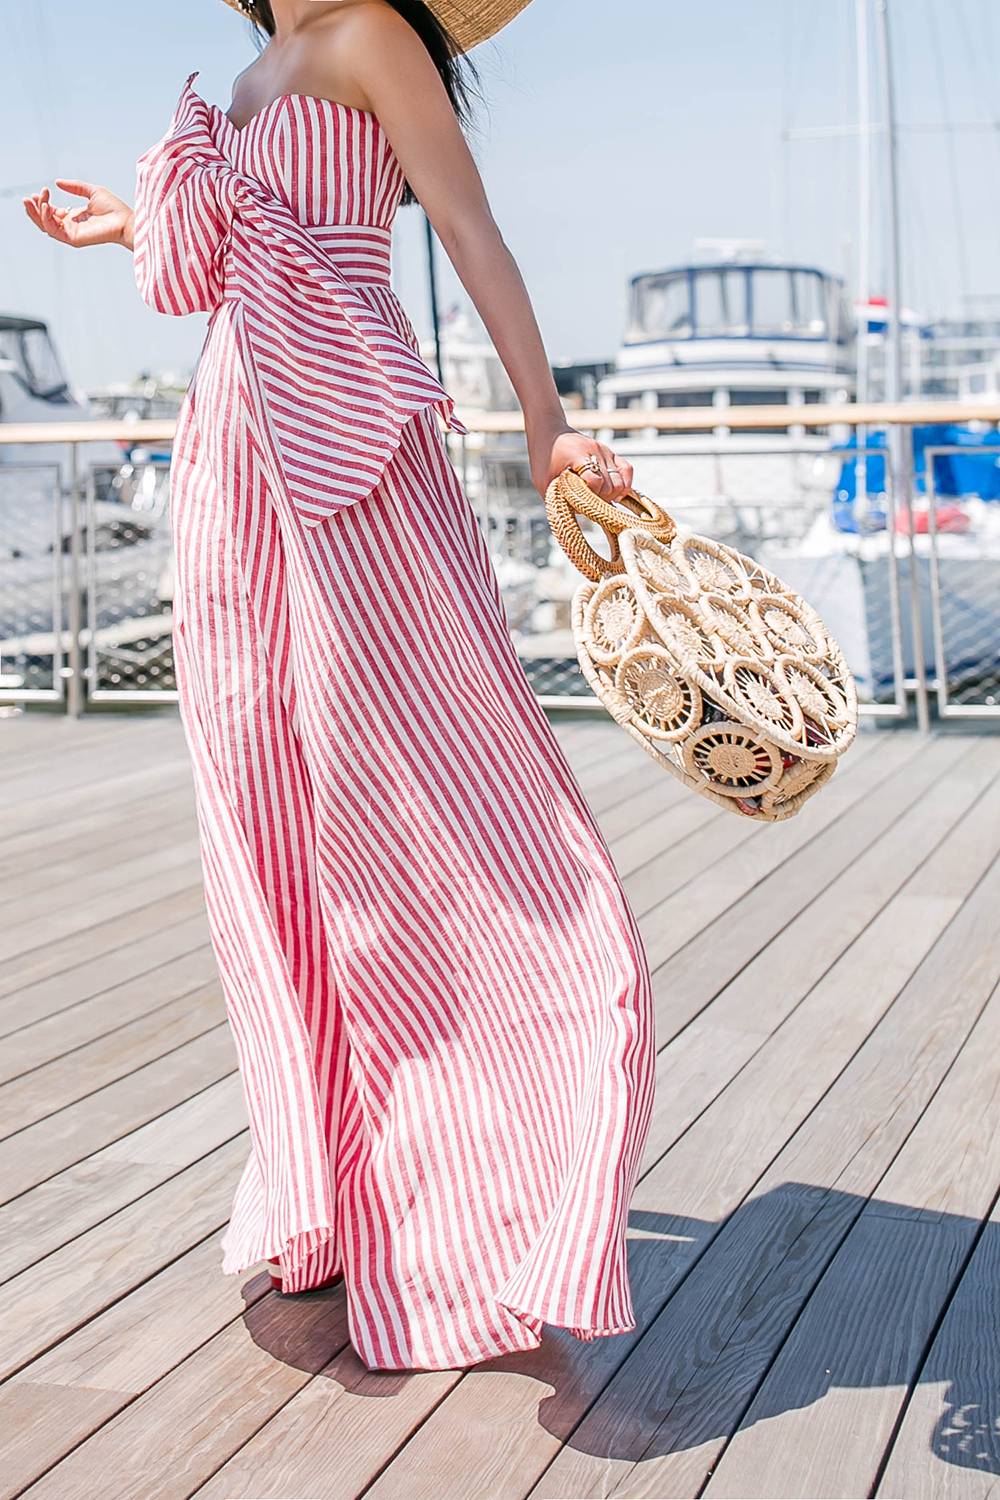 Cult-Gaia-circle-straw-bag-small.jpg